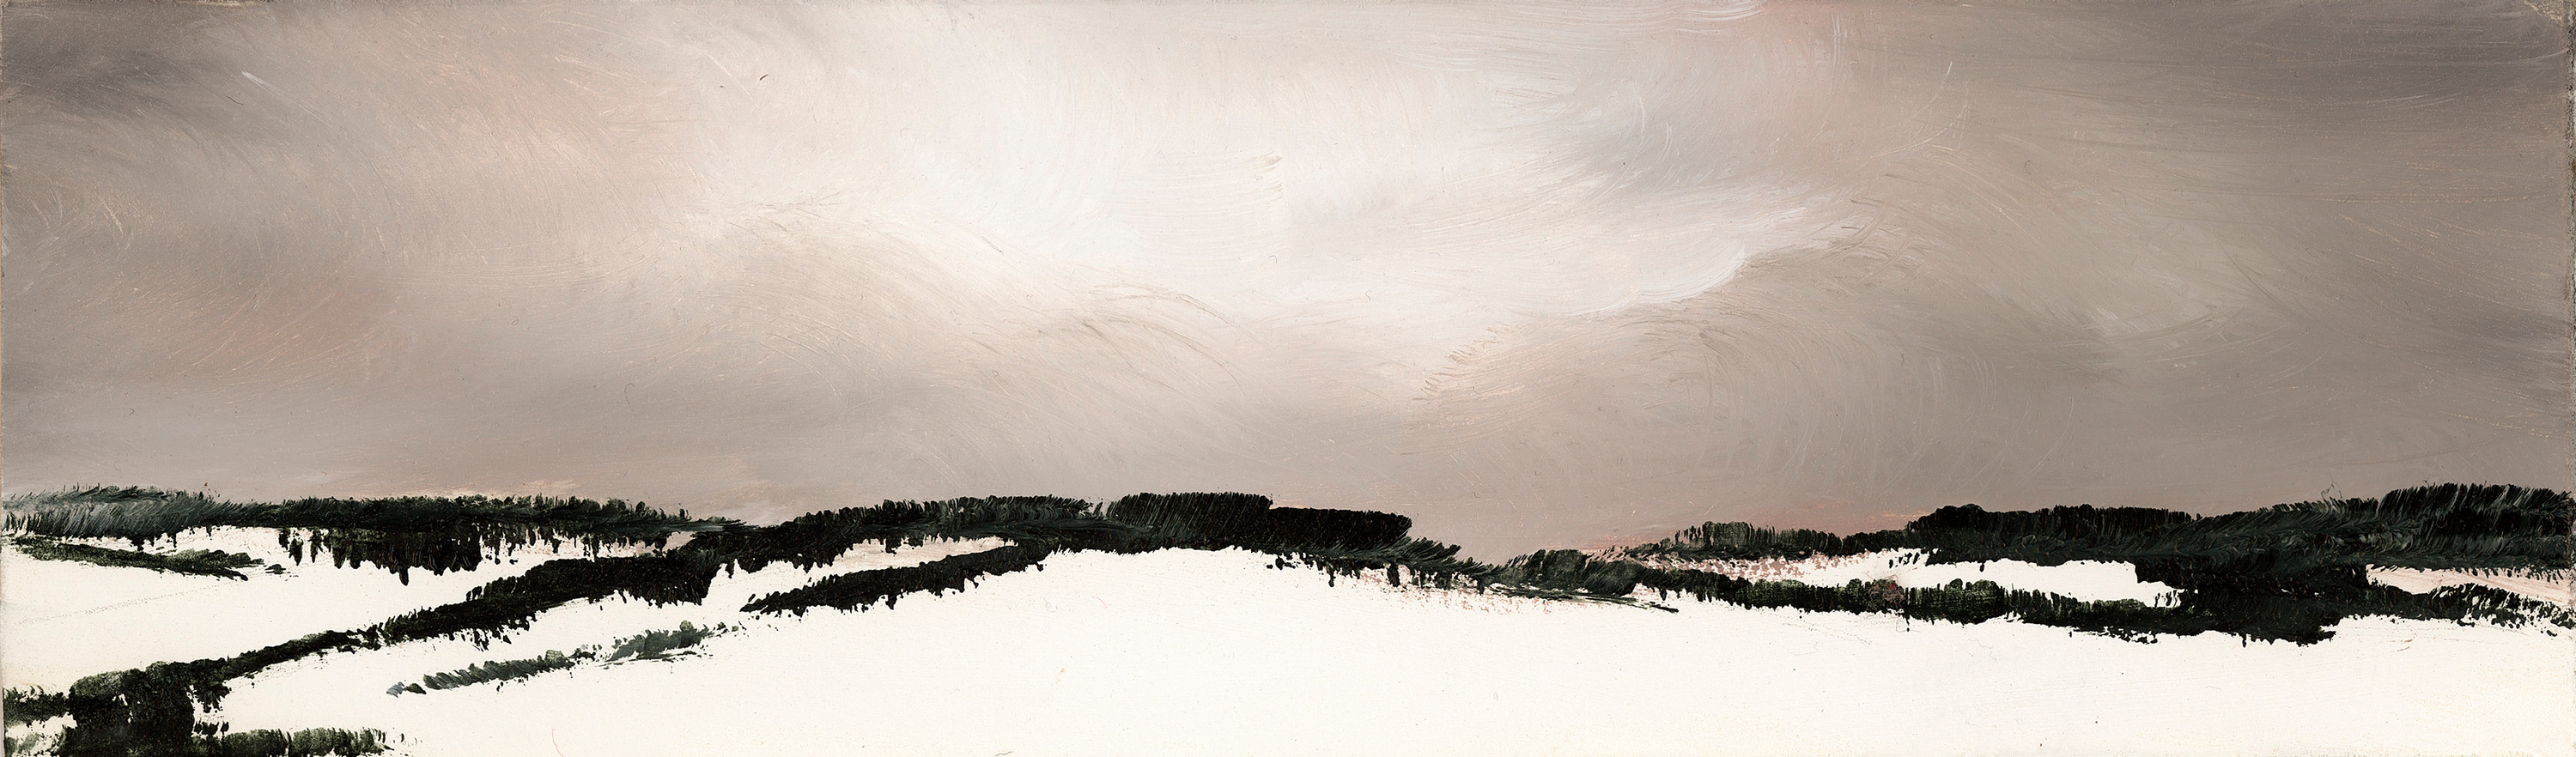 Snowfall from the fall almost no one sees 5 oil on paper 3.25x10 wallace lffmkf